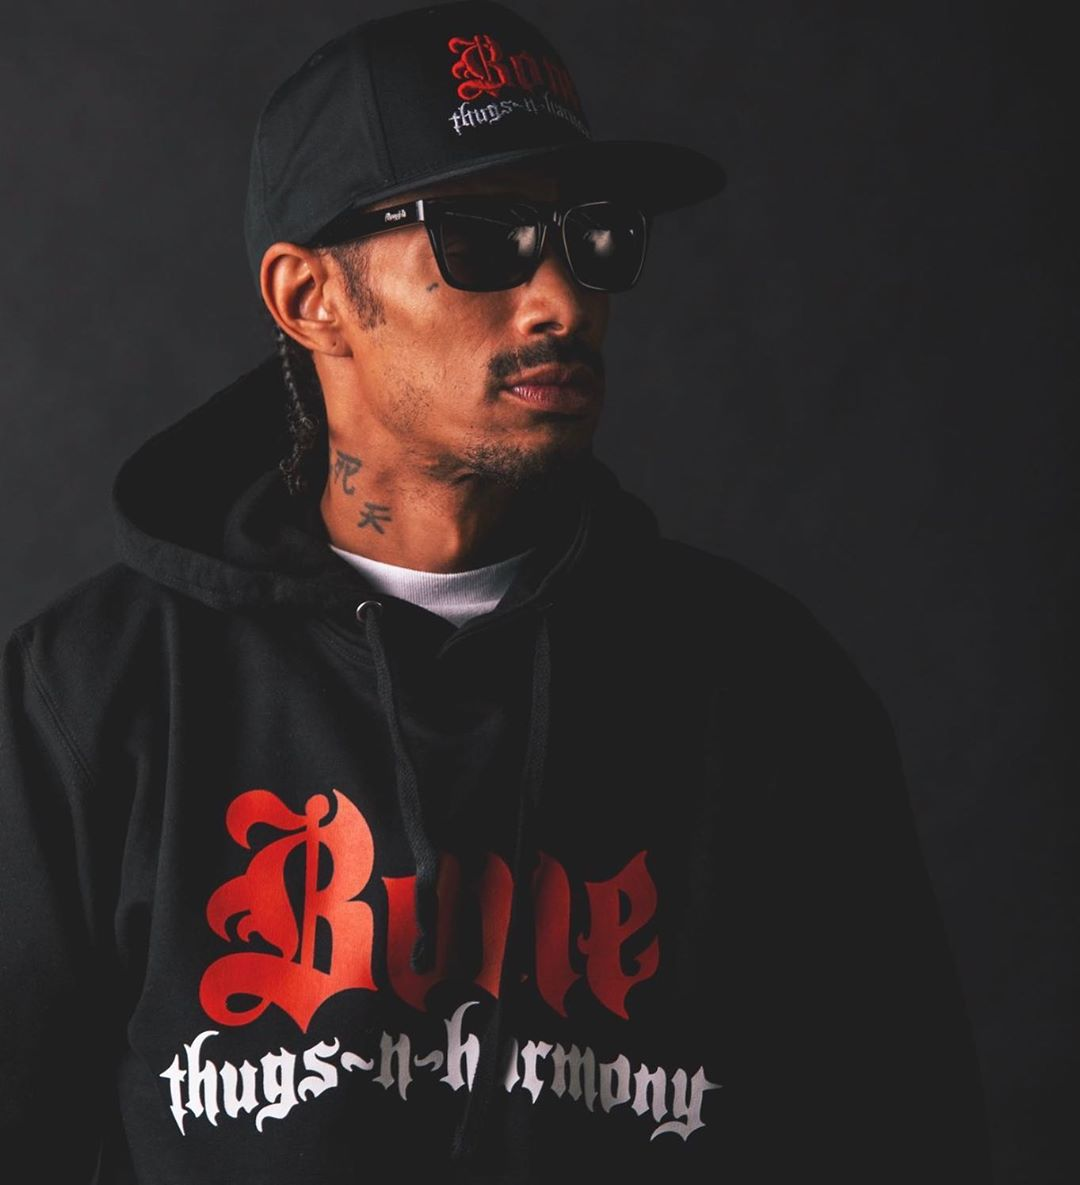 Fans of BTNH, show your support with Official Merch from LayzieGear.com - Layzie Bone